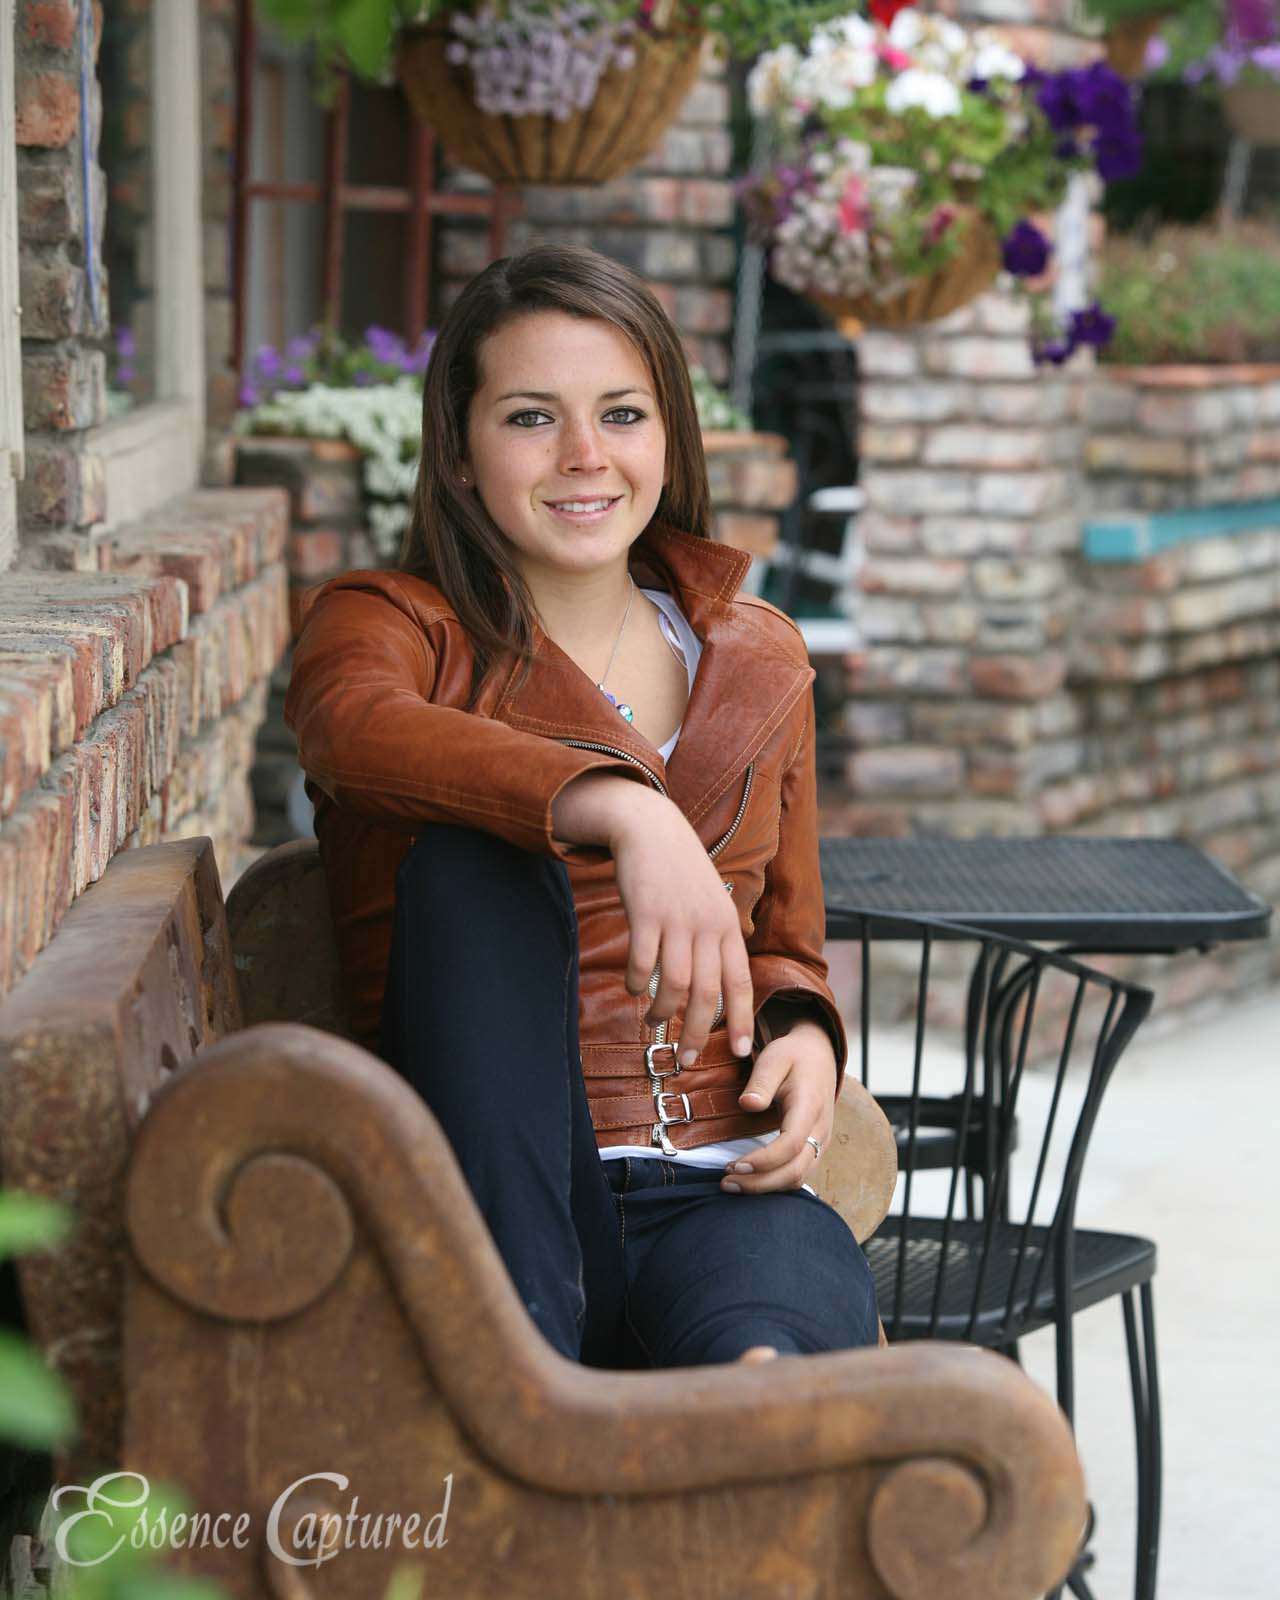 female high school senior portrait sitting on bench in outdoor cafe